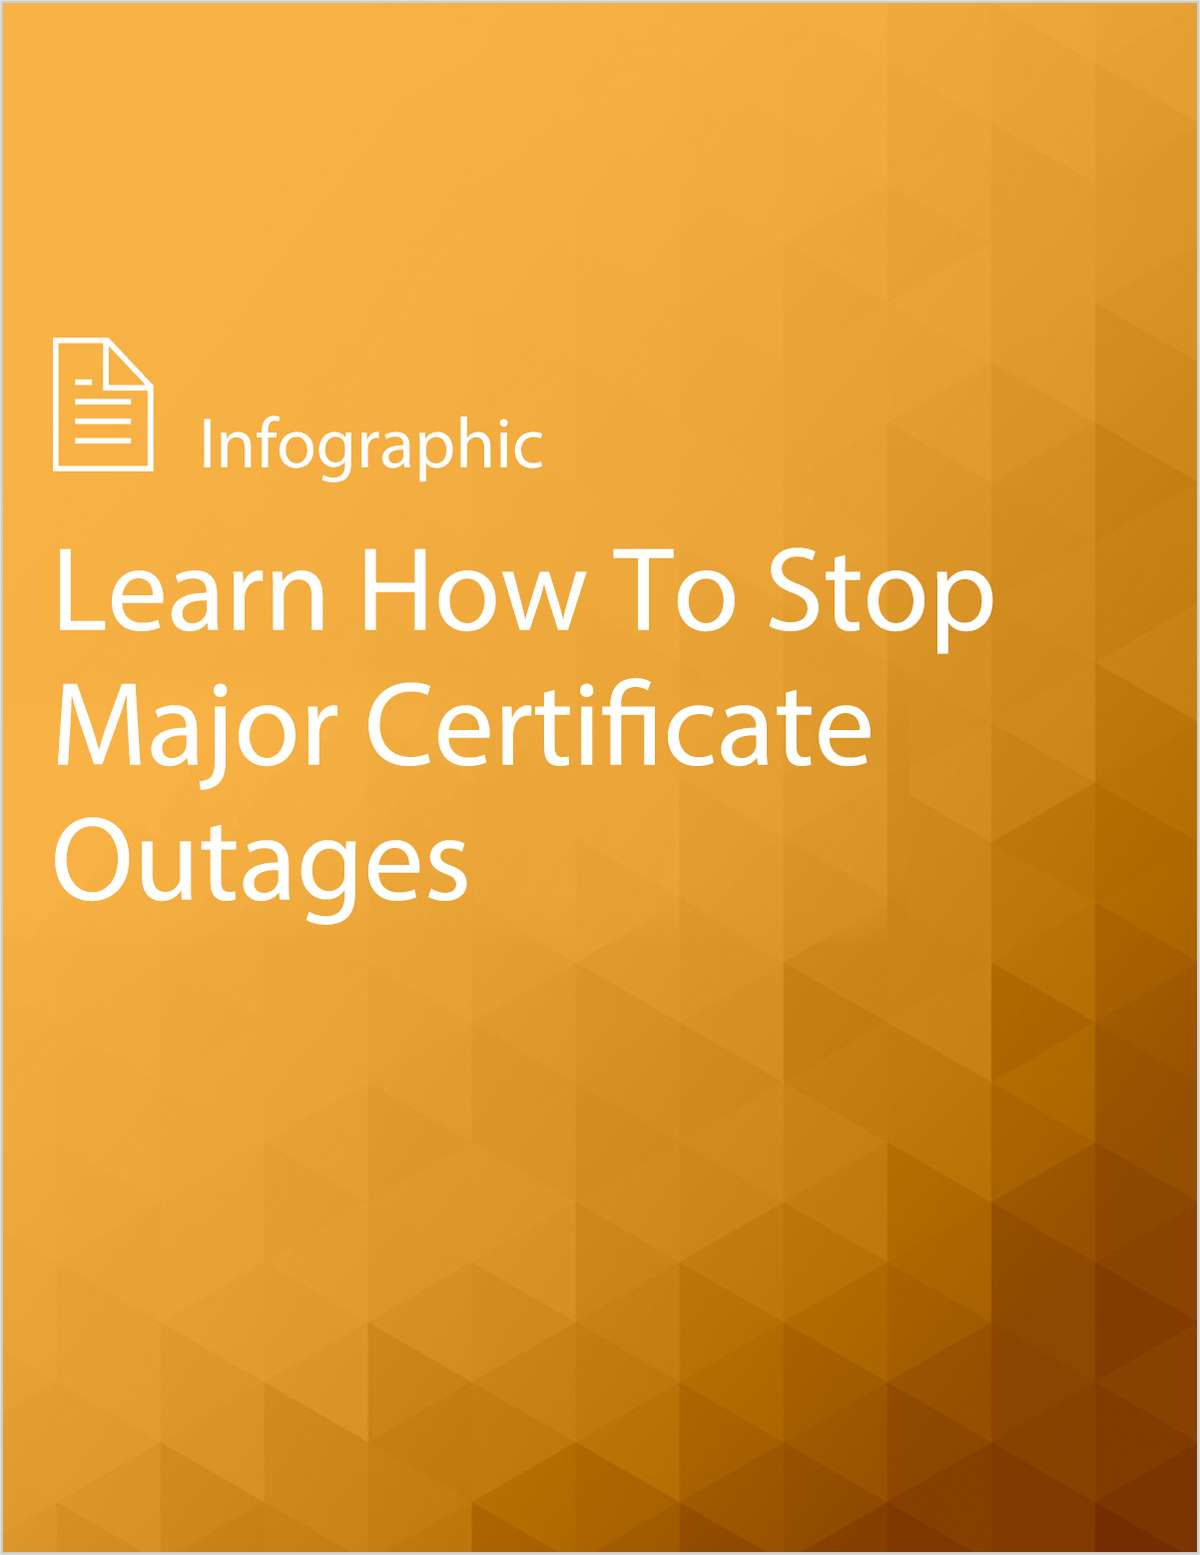 Learn How To Stop Major Certificate Outages